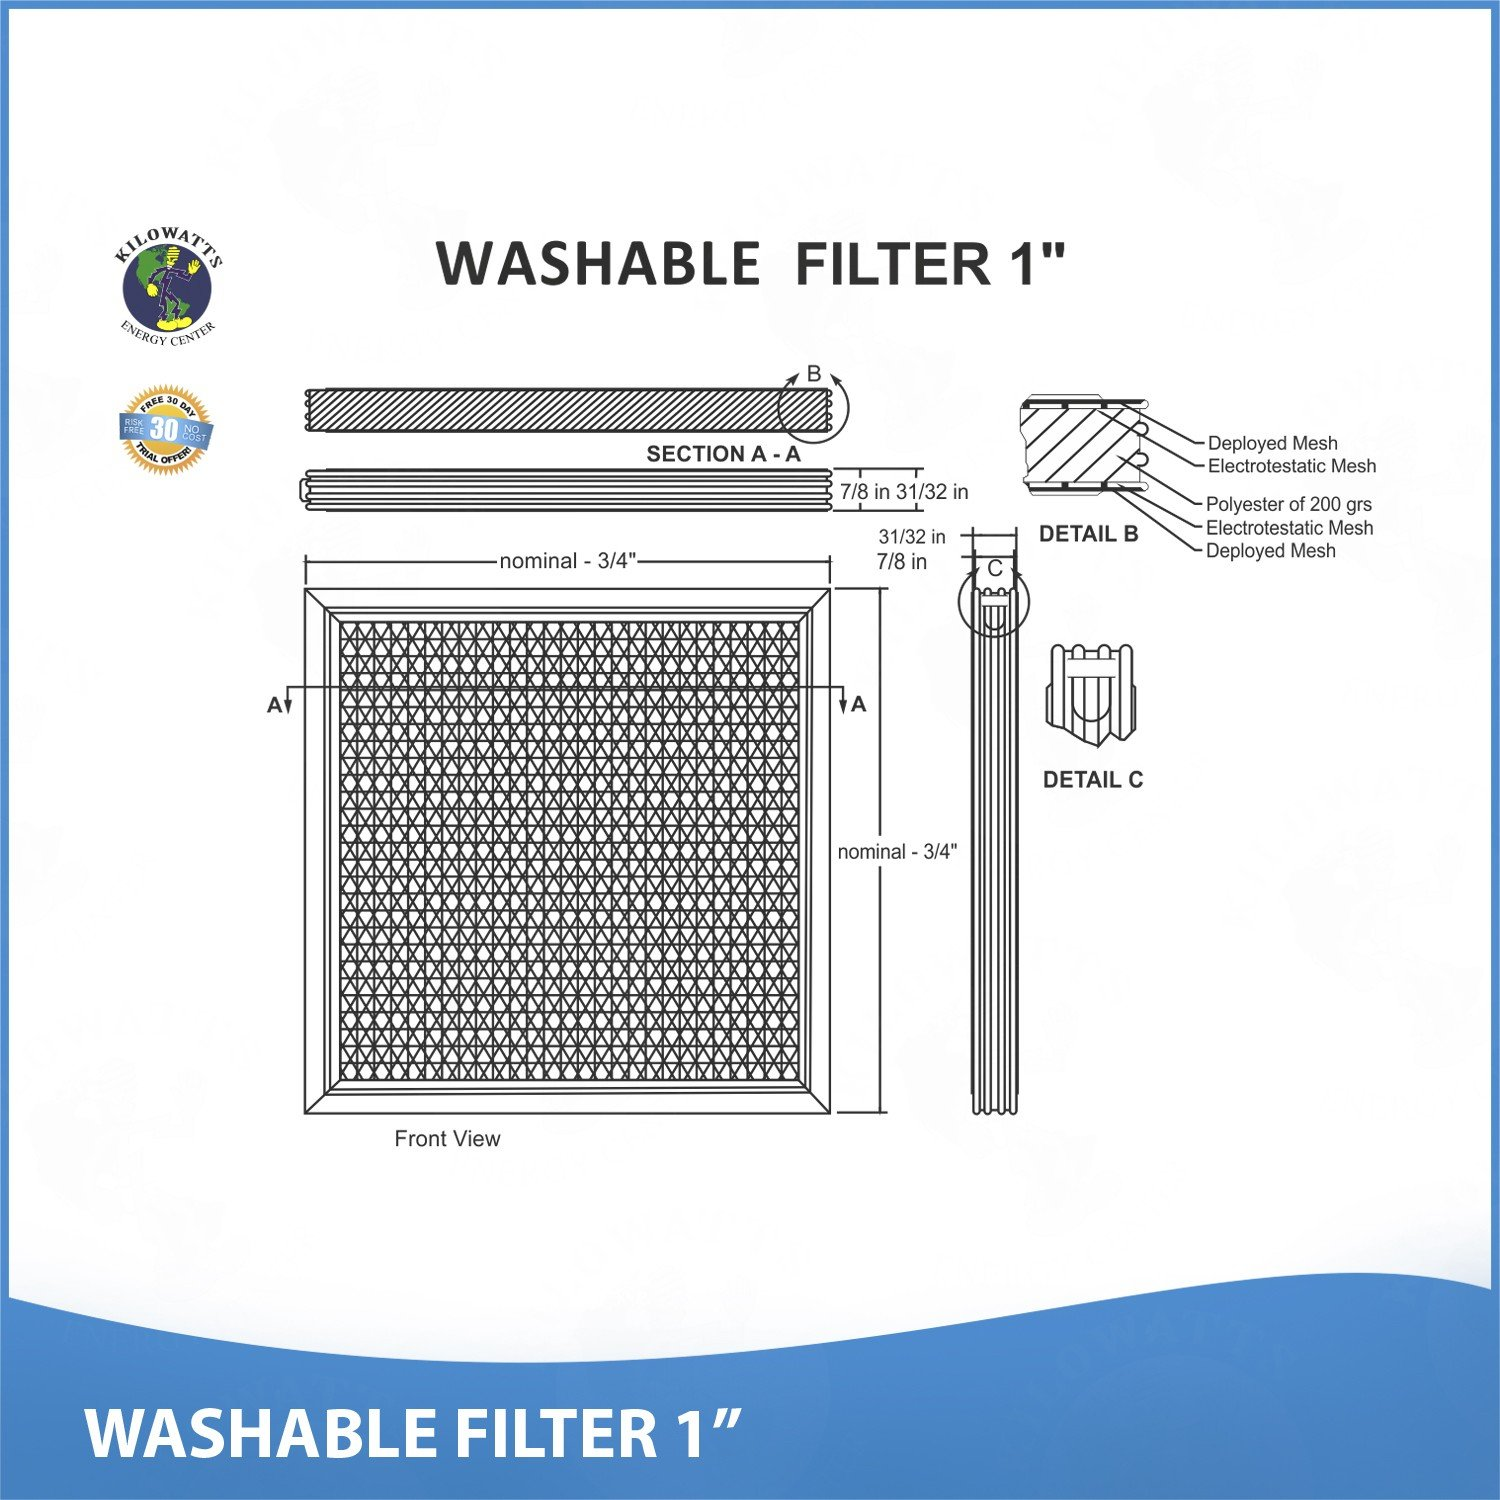 24x30x1 Washable Permanent A/C Furnace Air Filter by Kilowatts Energy Center (Image #3)